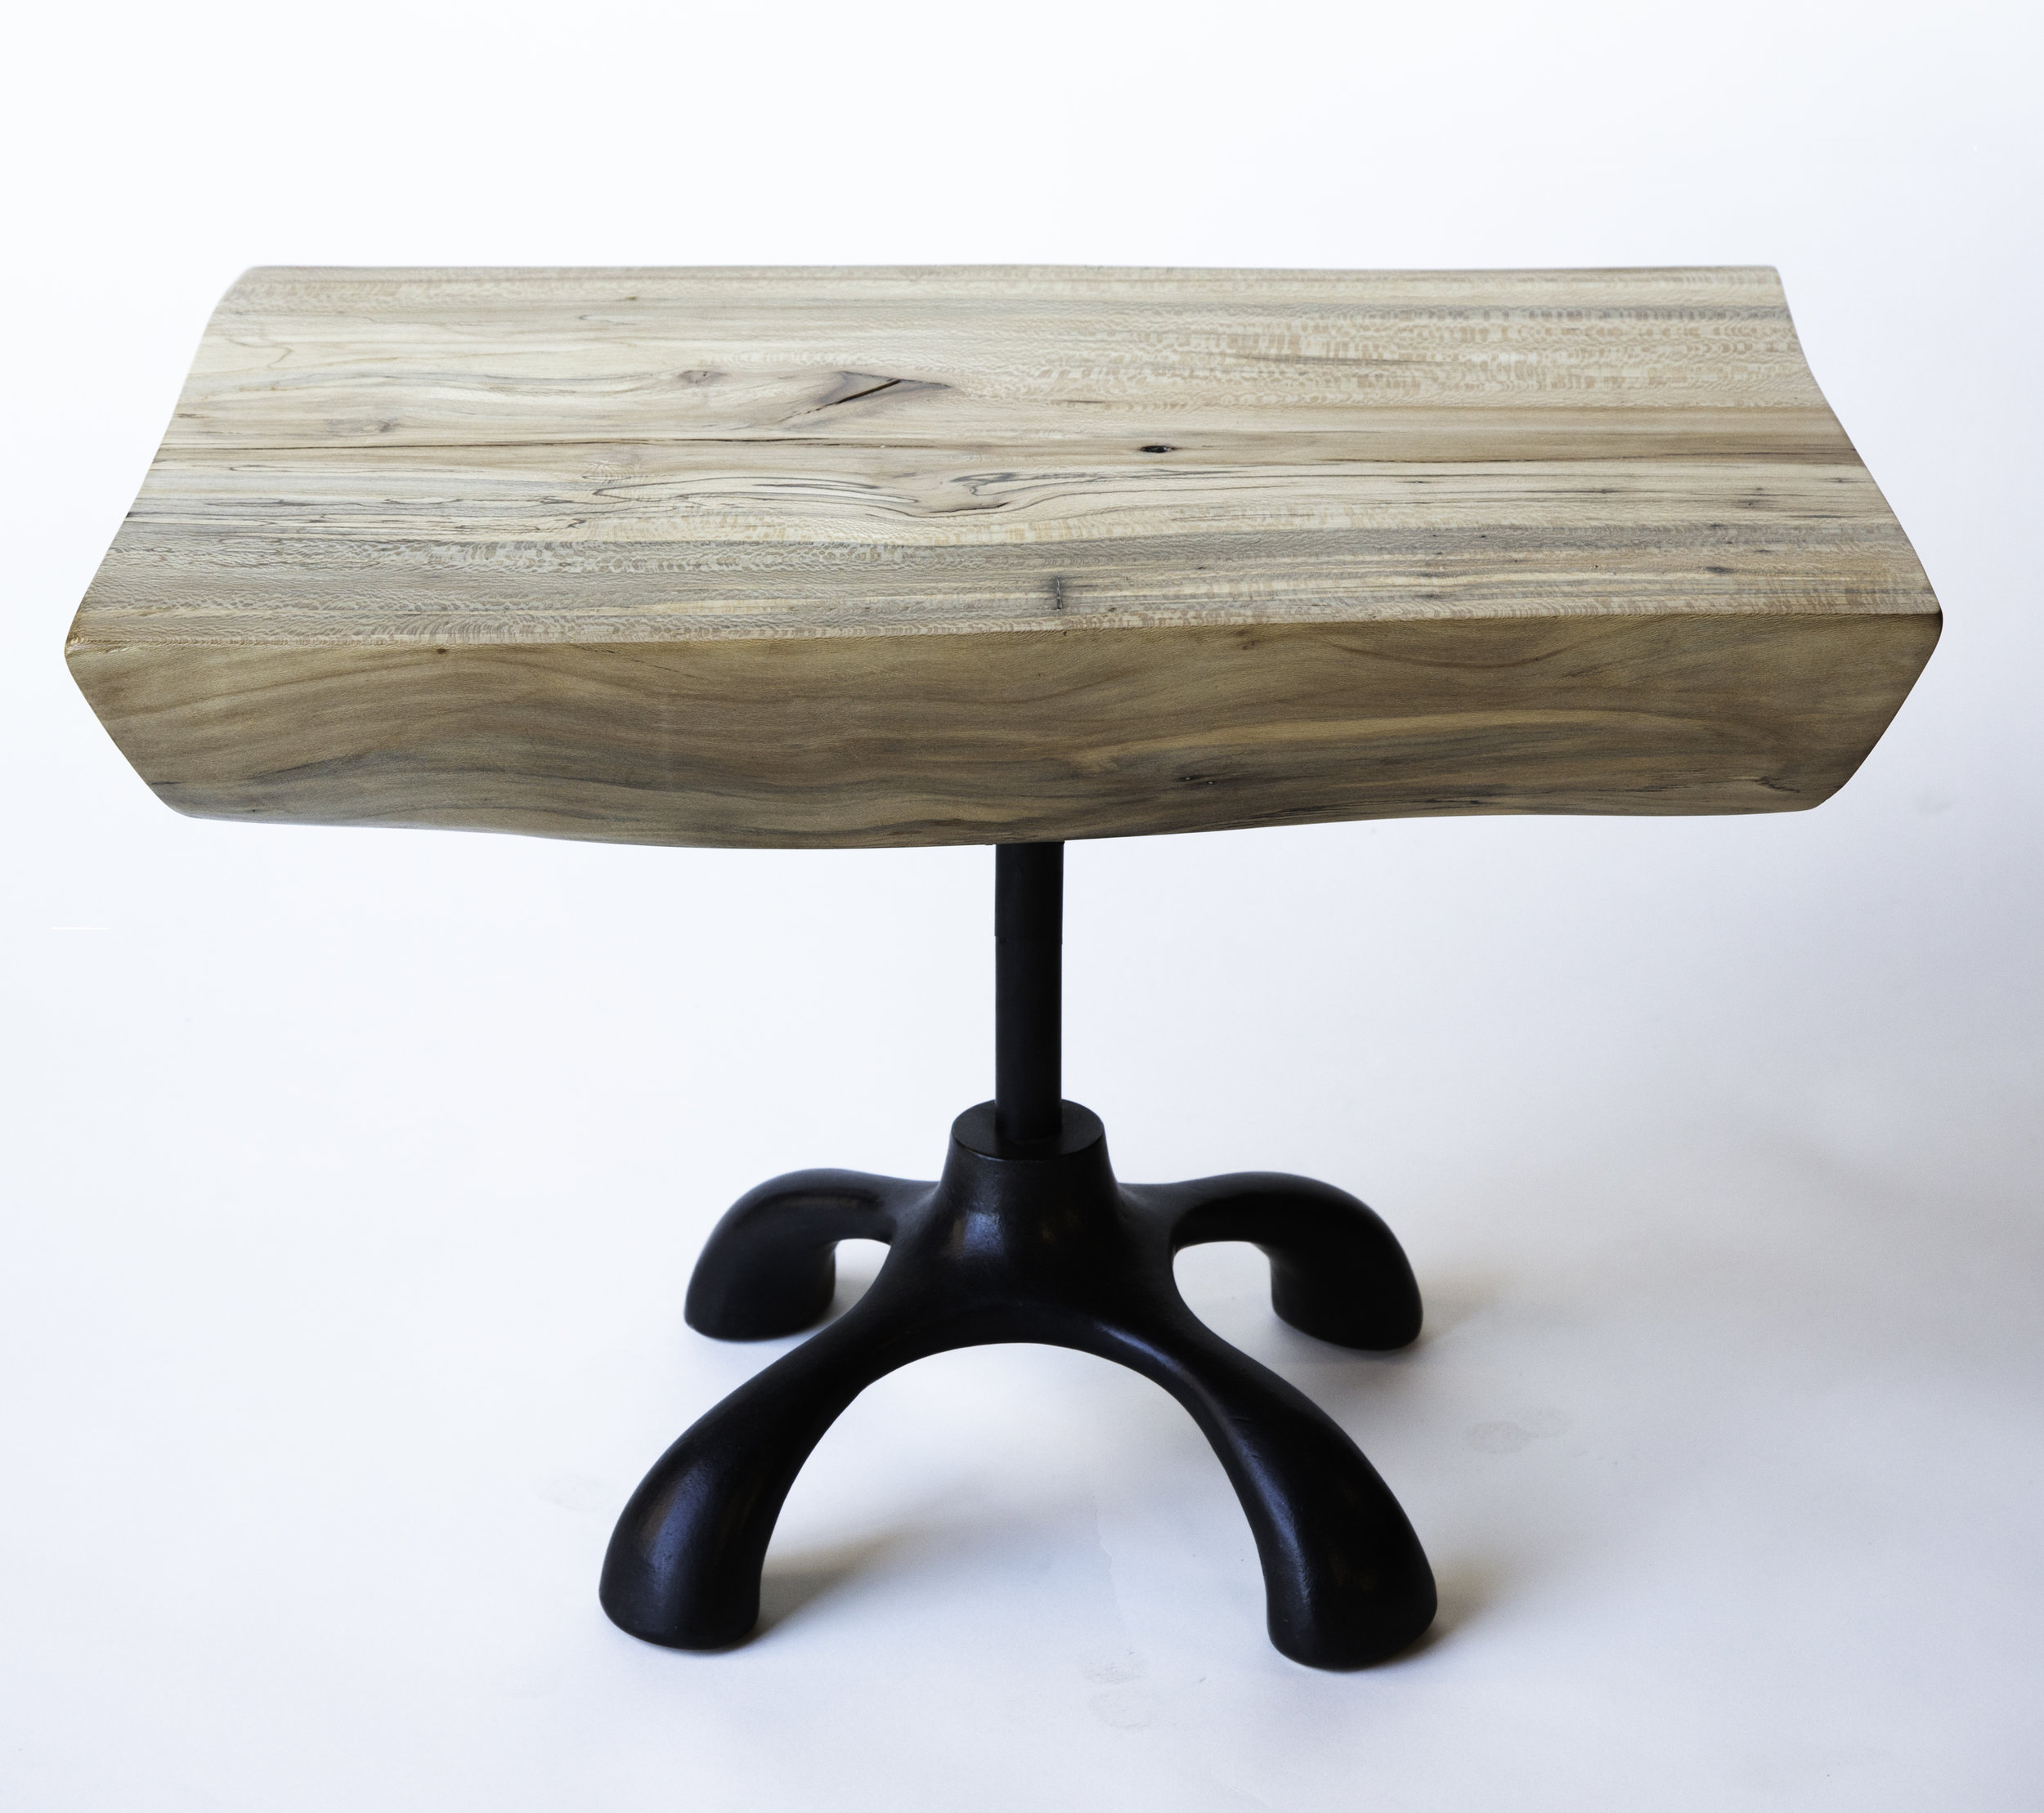 Chunk Sycamore Table 6.jpg